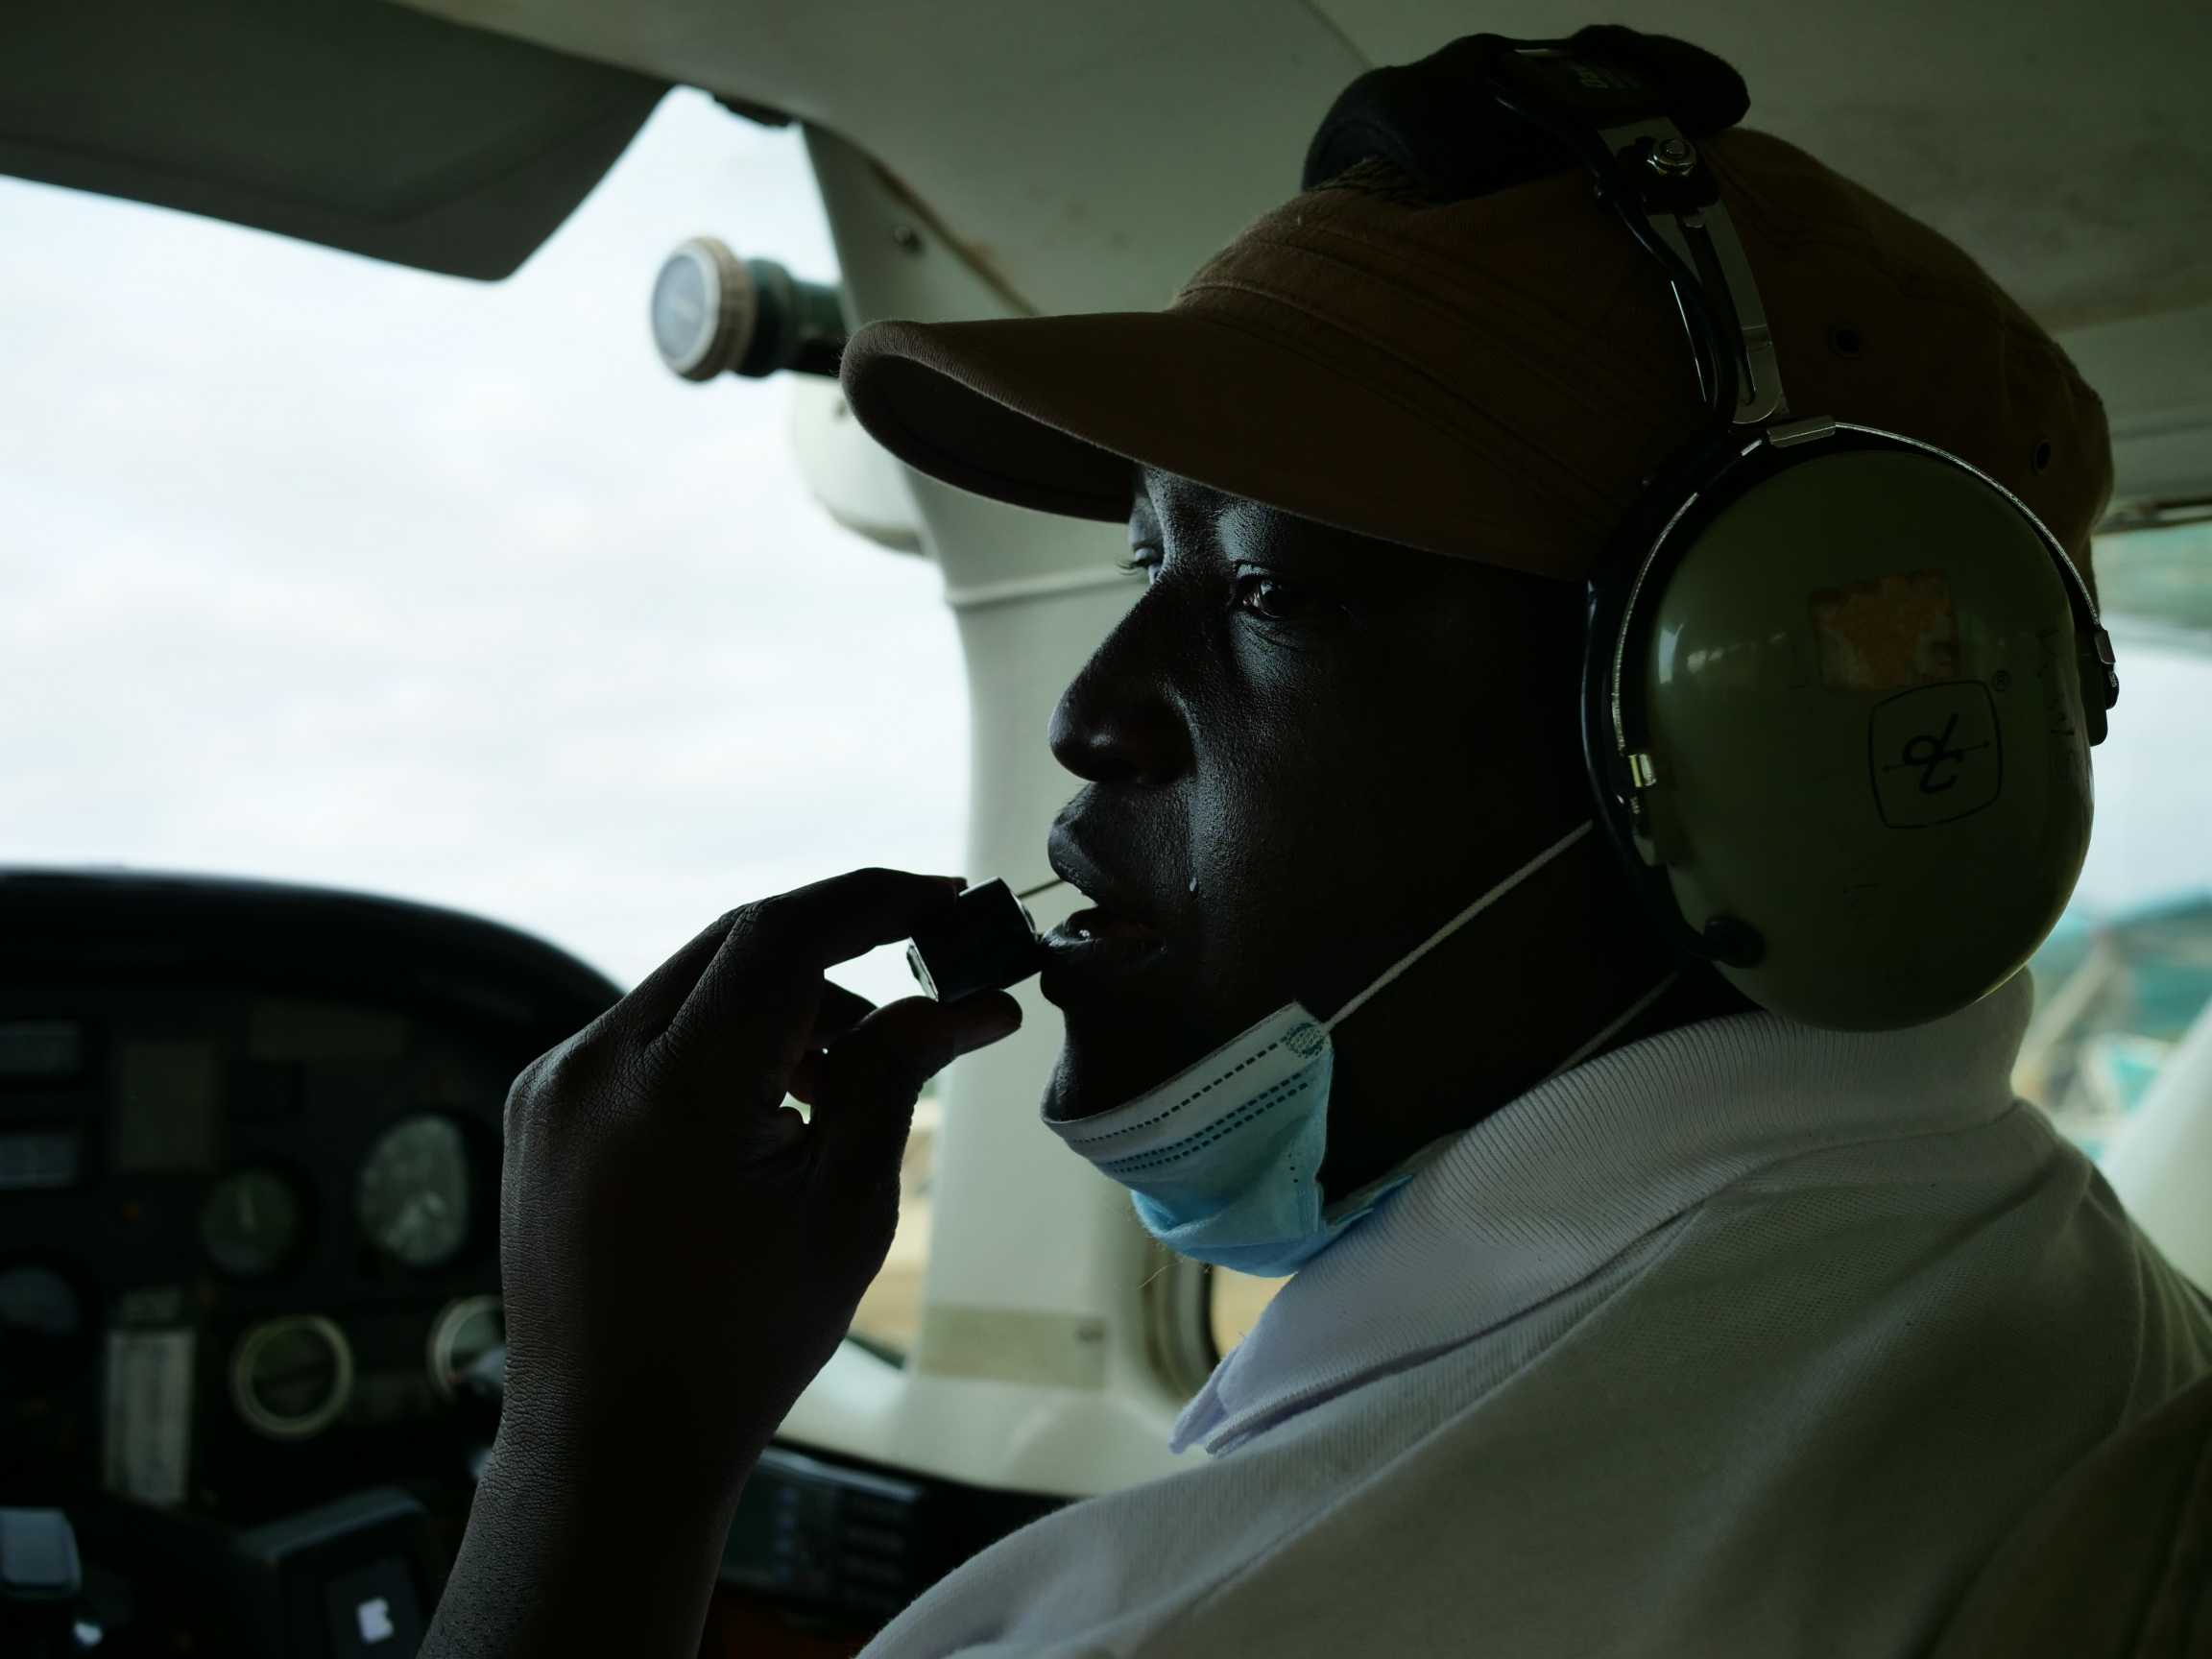 Man in a plane cockpit wearing a hat and headphones speaking into an audio transmitter